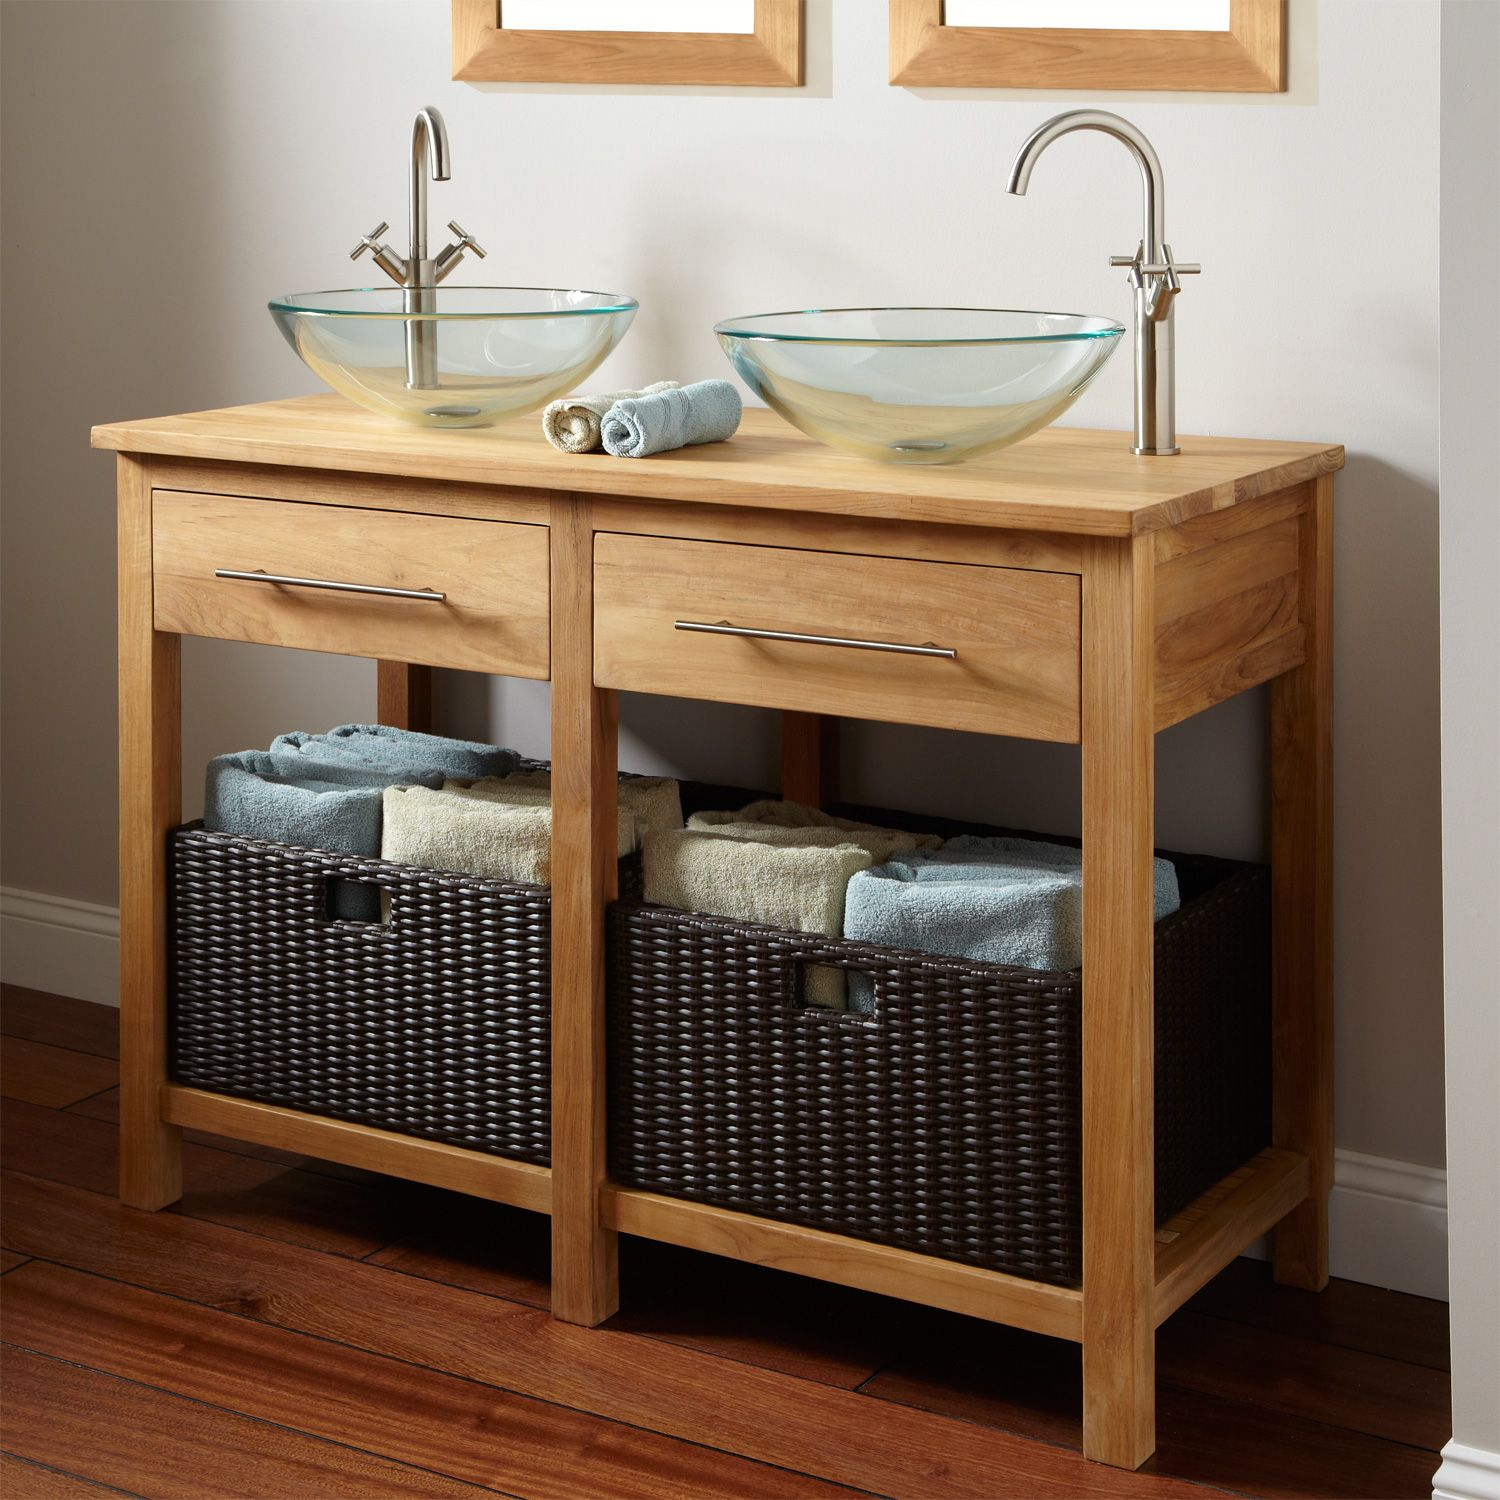 Diy Bathroom Vanity Save Money By Making Your Own Diy Bathroom